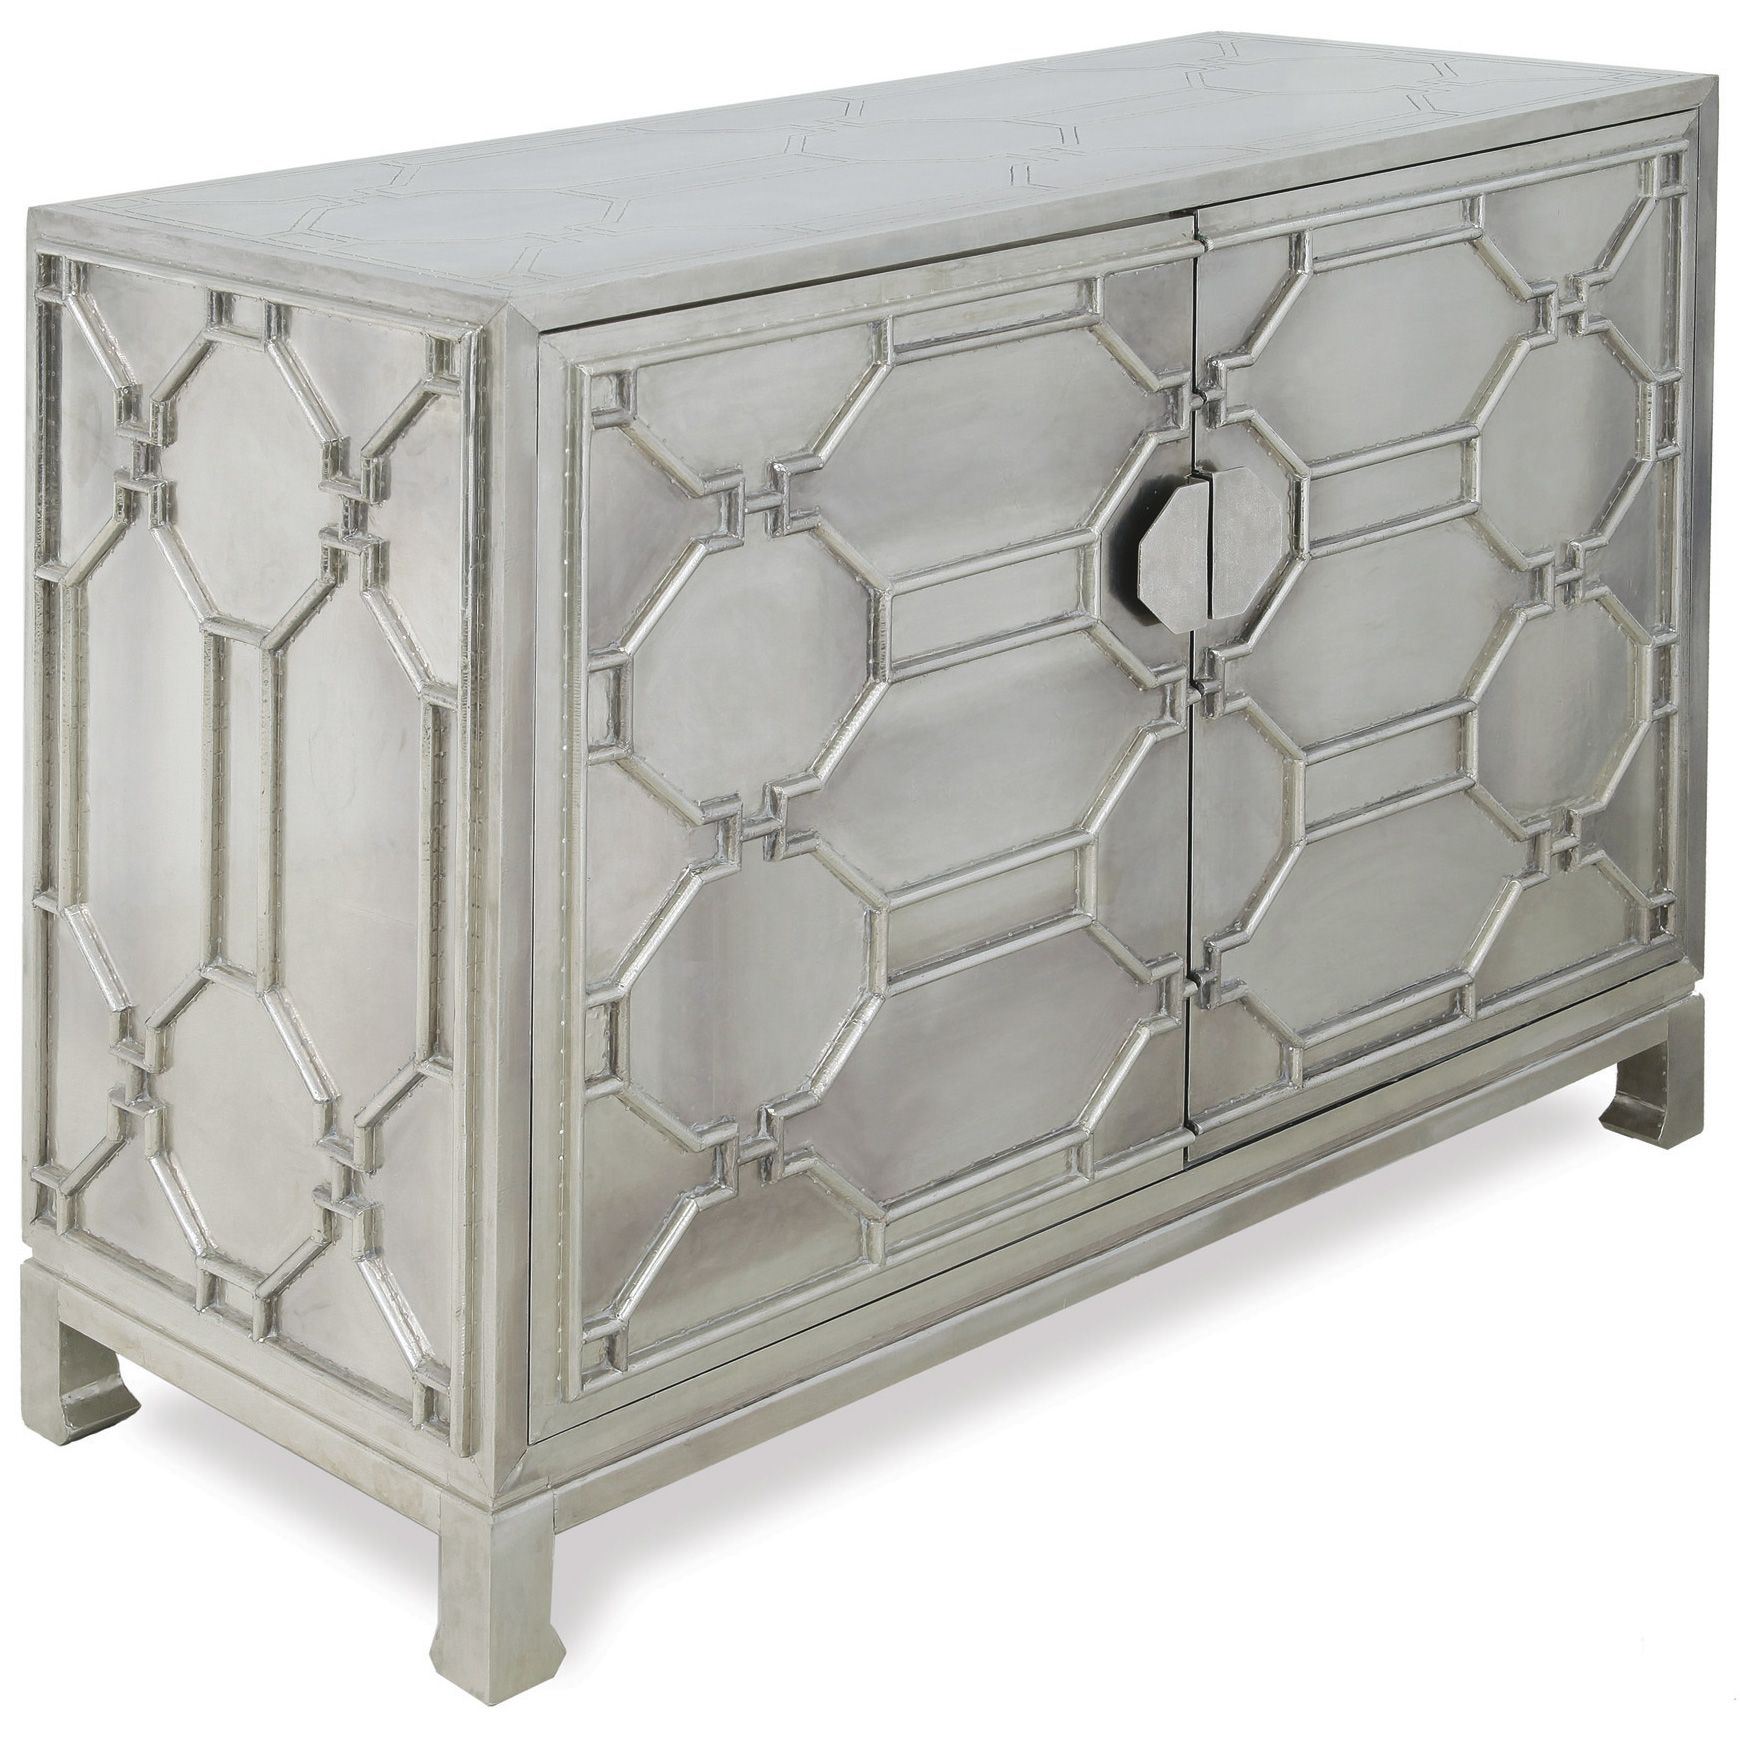 Jodie Hollywood Regency German Silver 2 Door Cabinet | Dining Room for Aged Mirrored 2 Door Sideboards (Image 18 of 30)